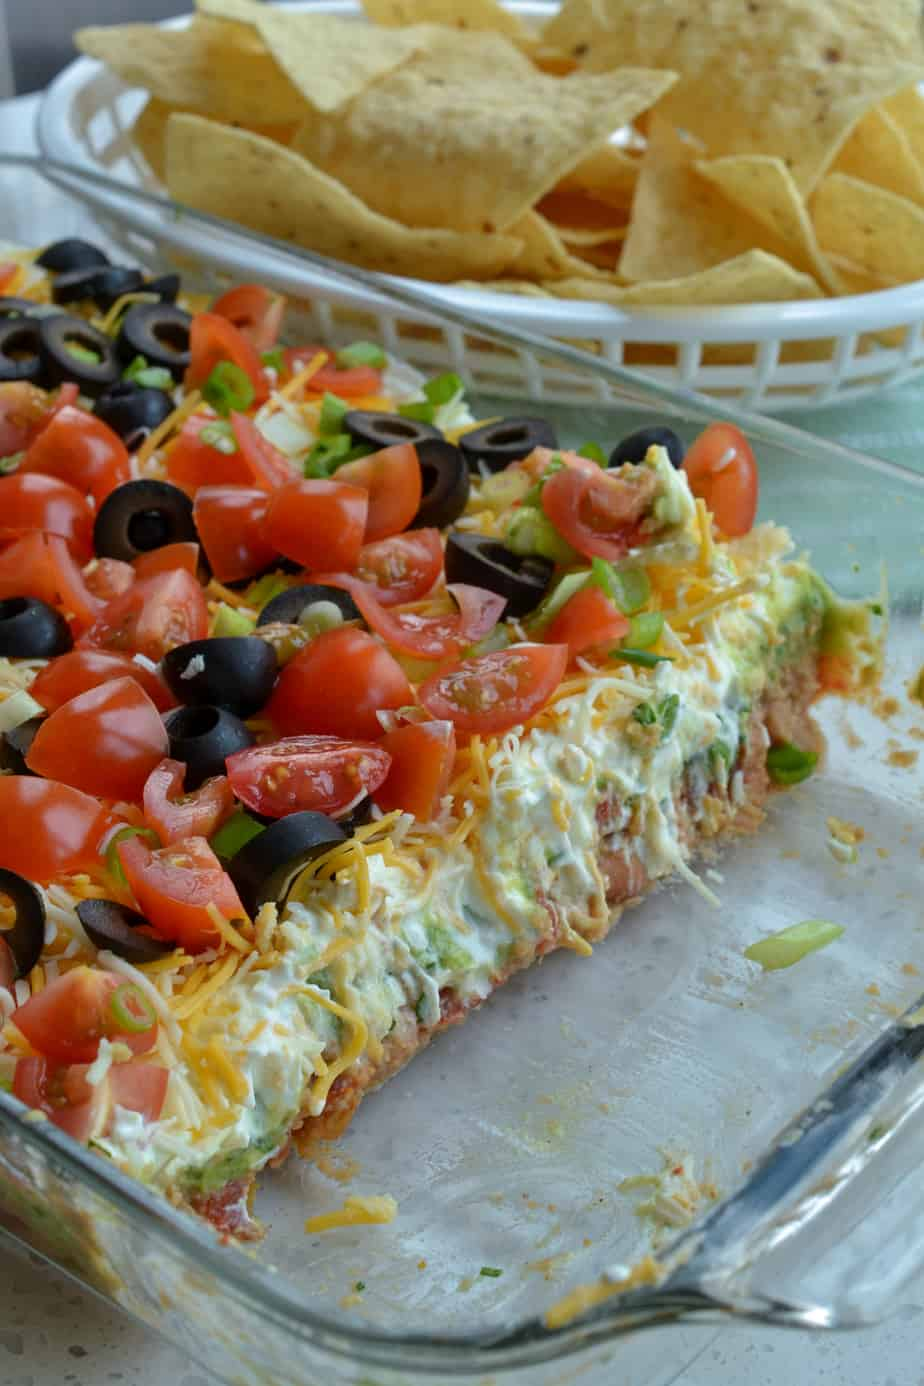 Not only is this Mexican dip delicious it is pretty.